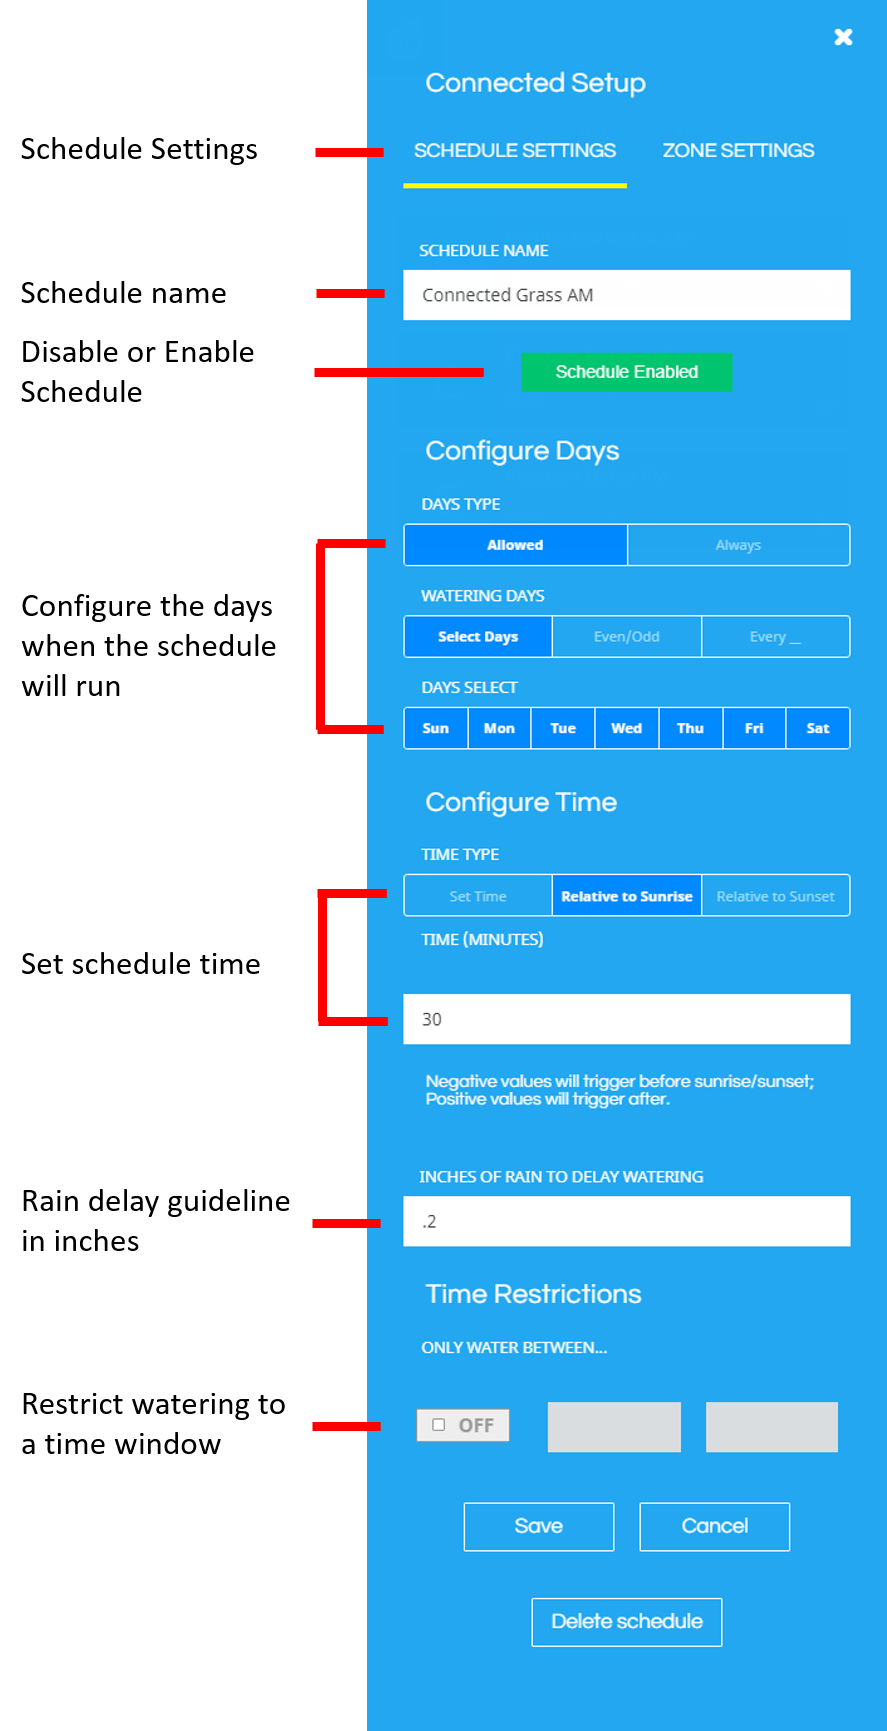 Connected Schedule Settings